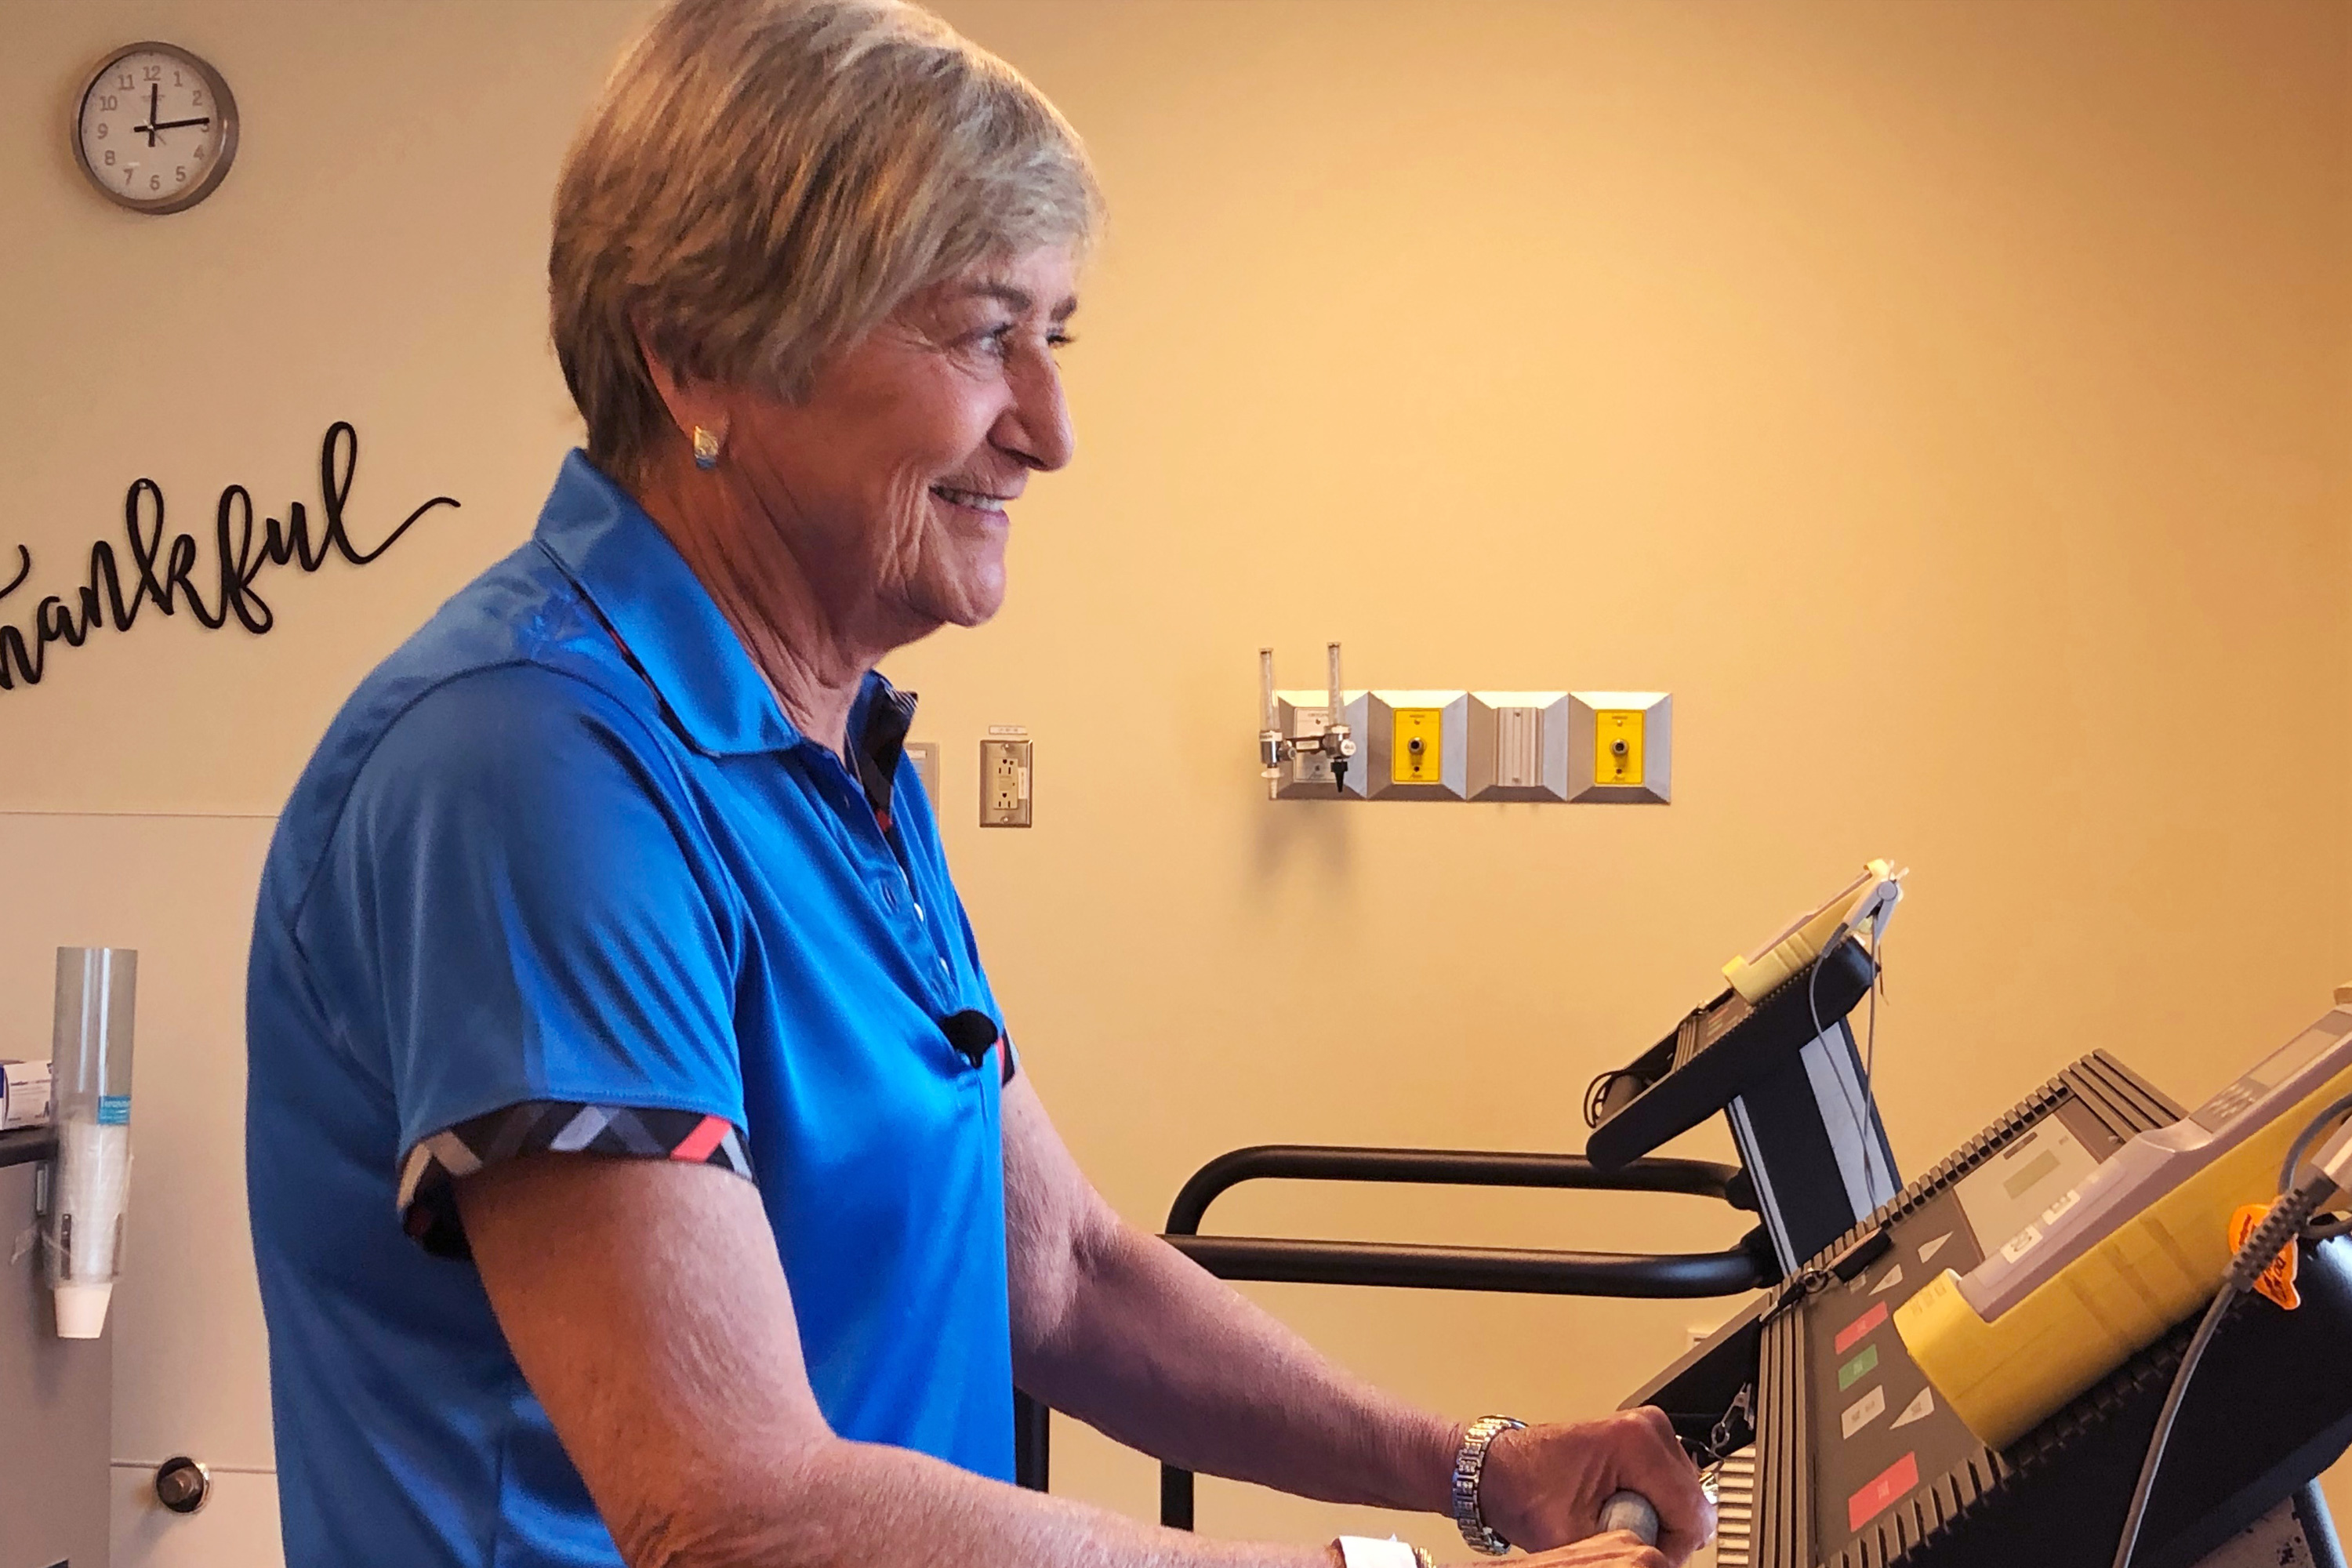 Davis can nearly run on a treadmill now. Before her surgery she needed to wear an oxygen mask. (Carolyn Ray/CBC)